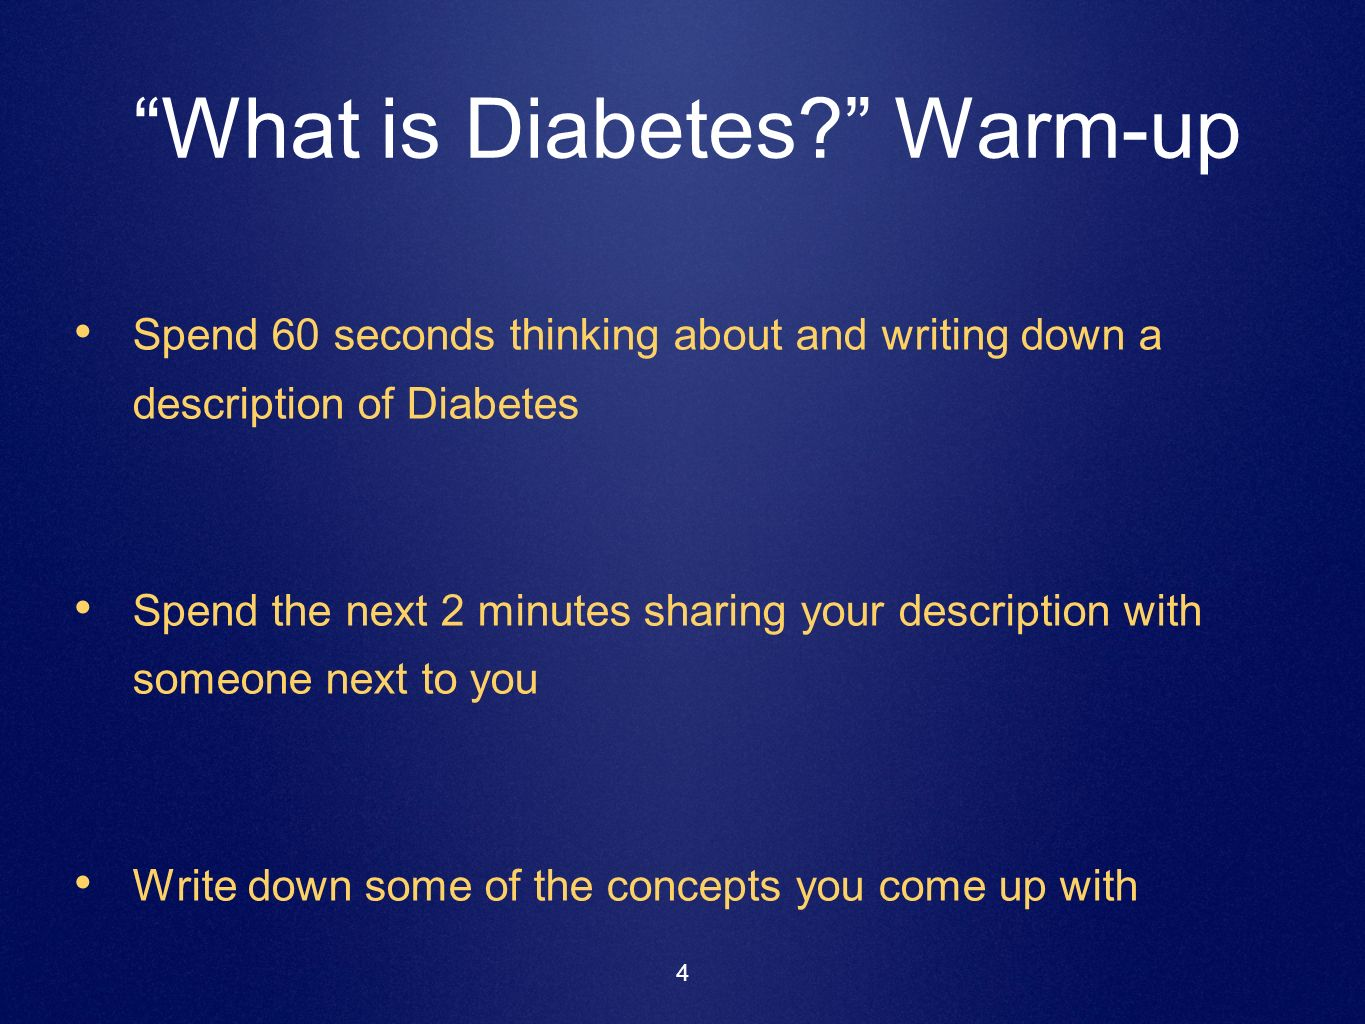 What is Diabetes Warm-up